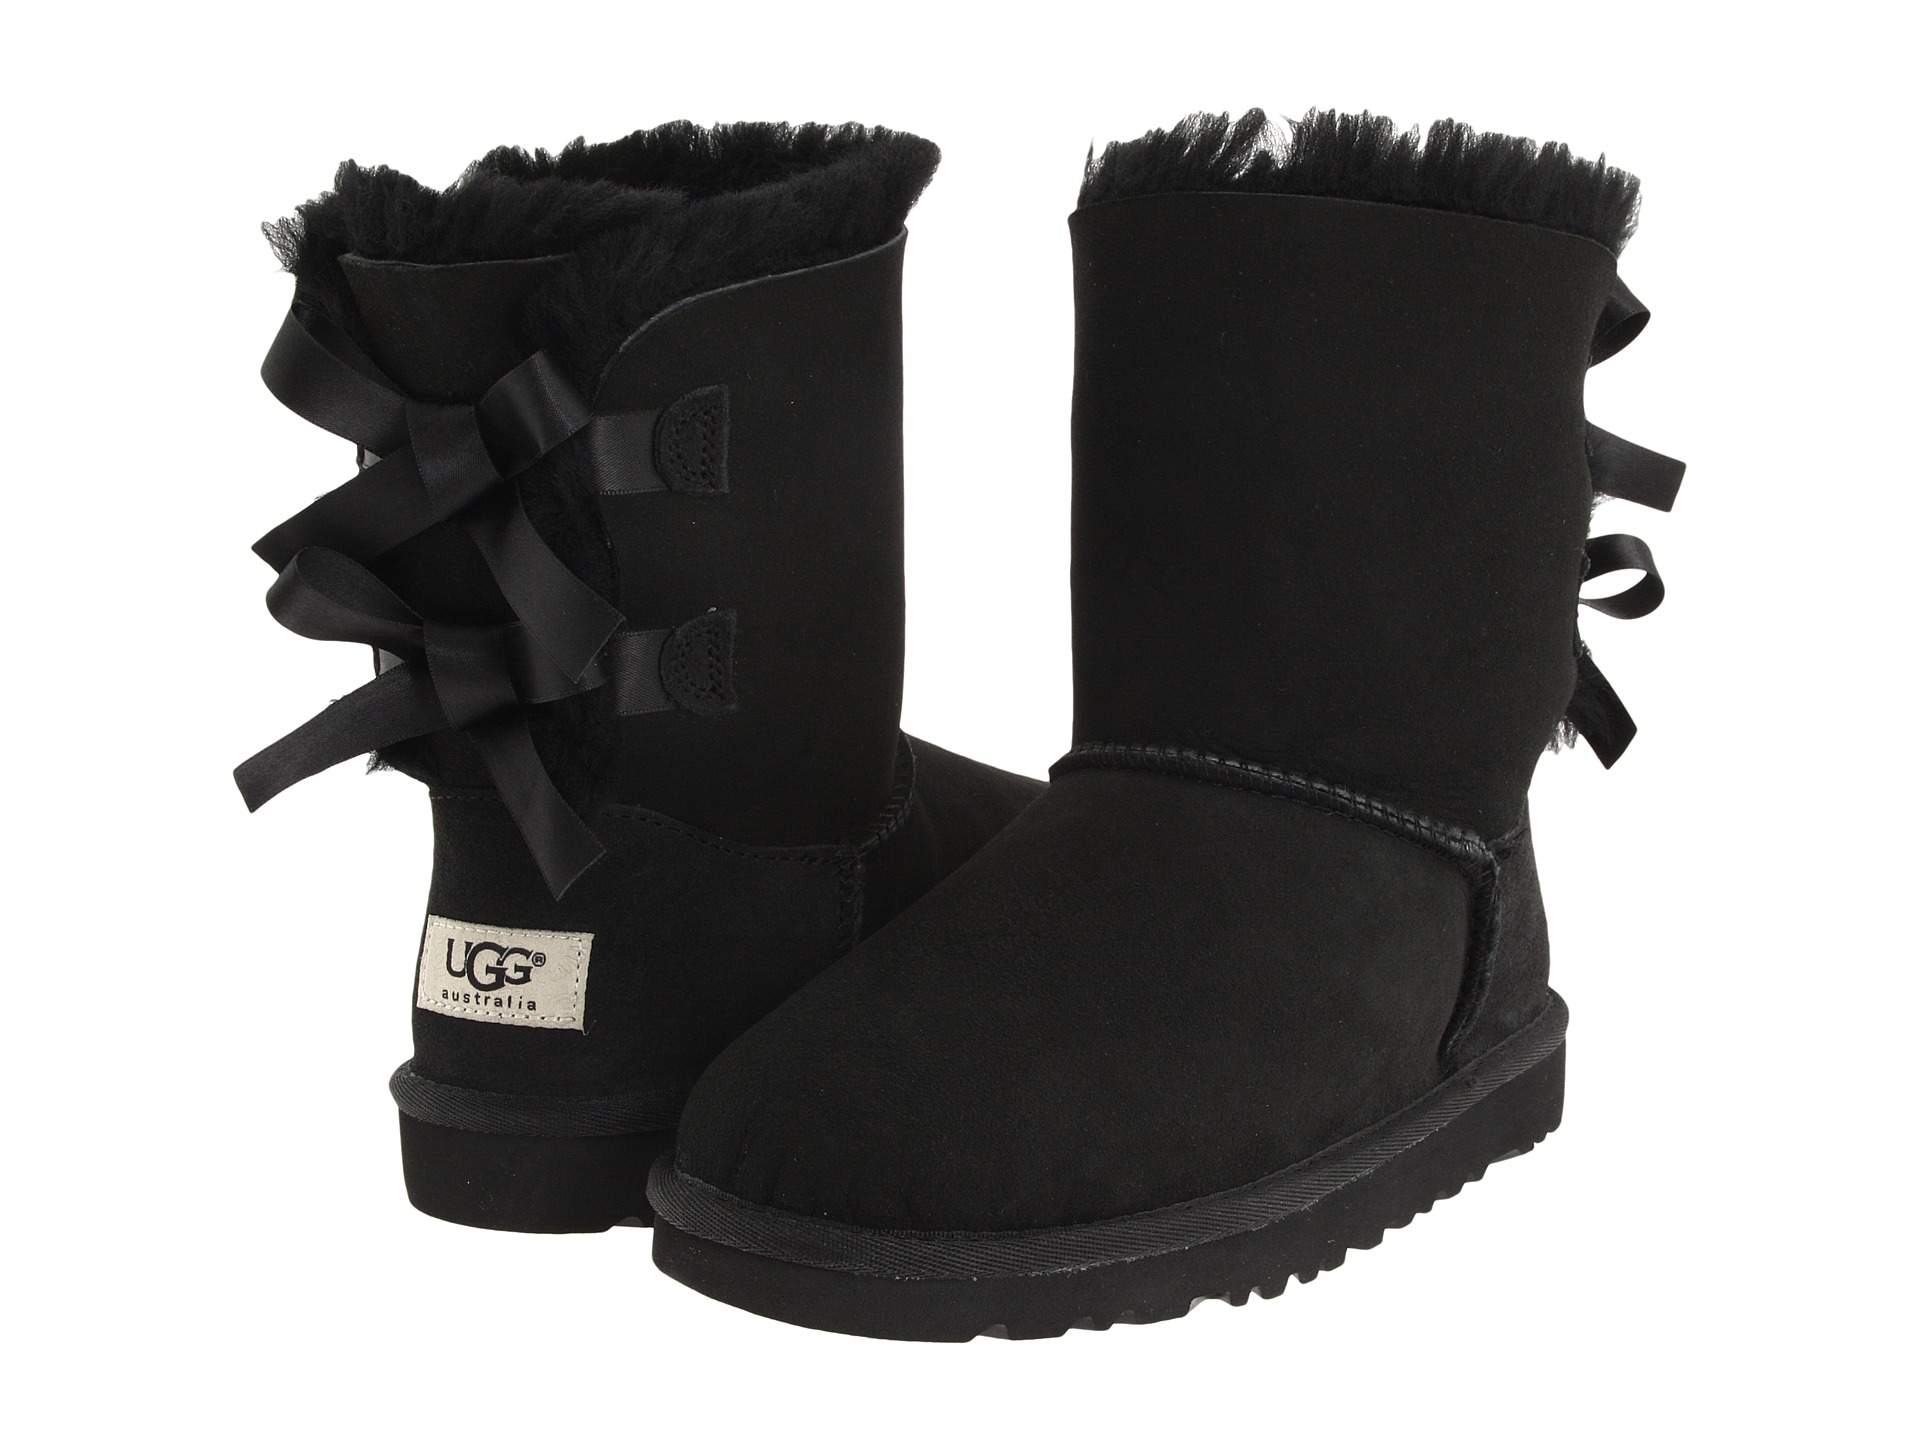 Ia espa a ugg bailey button boots 5803 chestnut 94 04 lrg